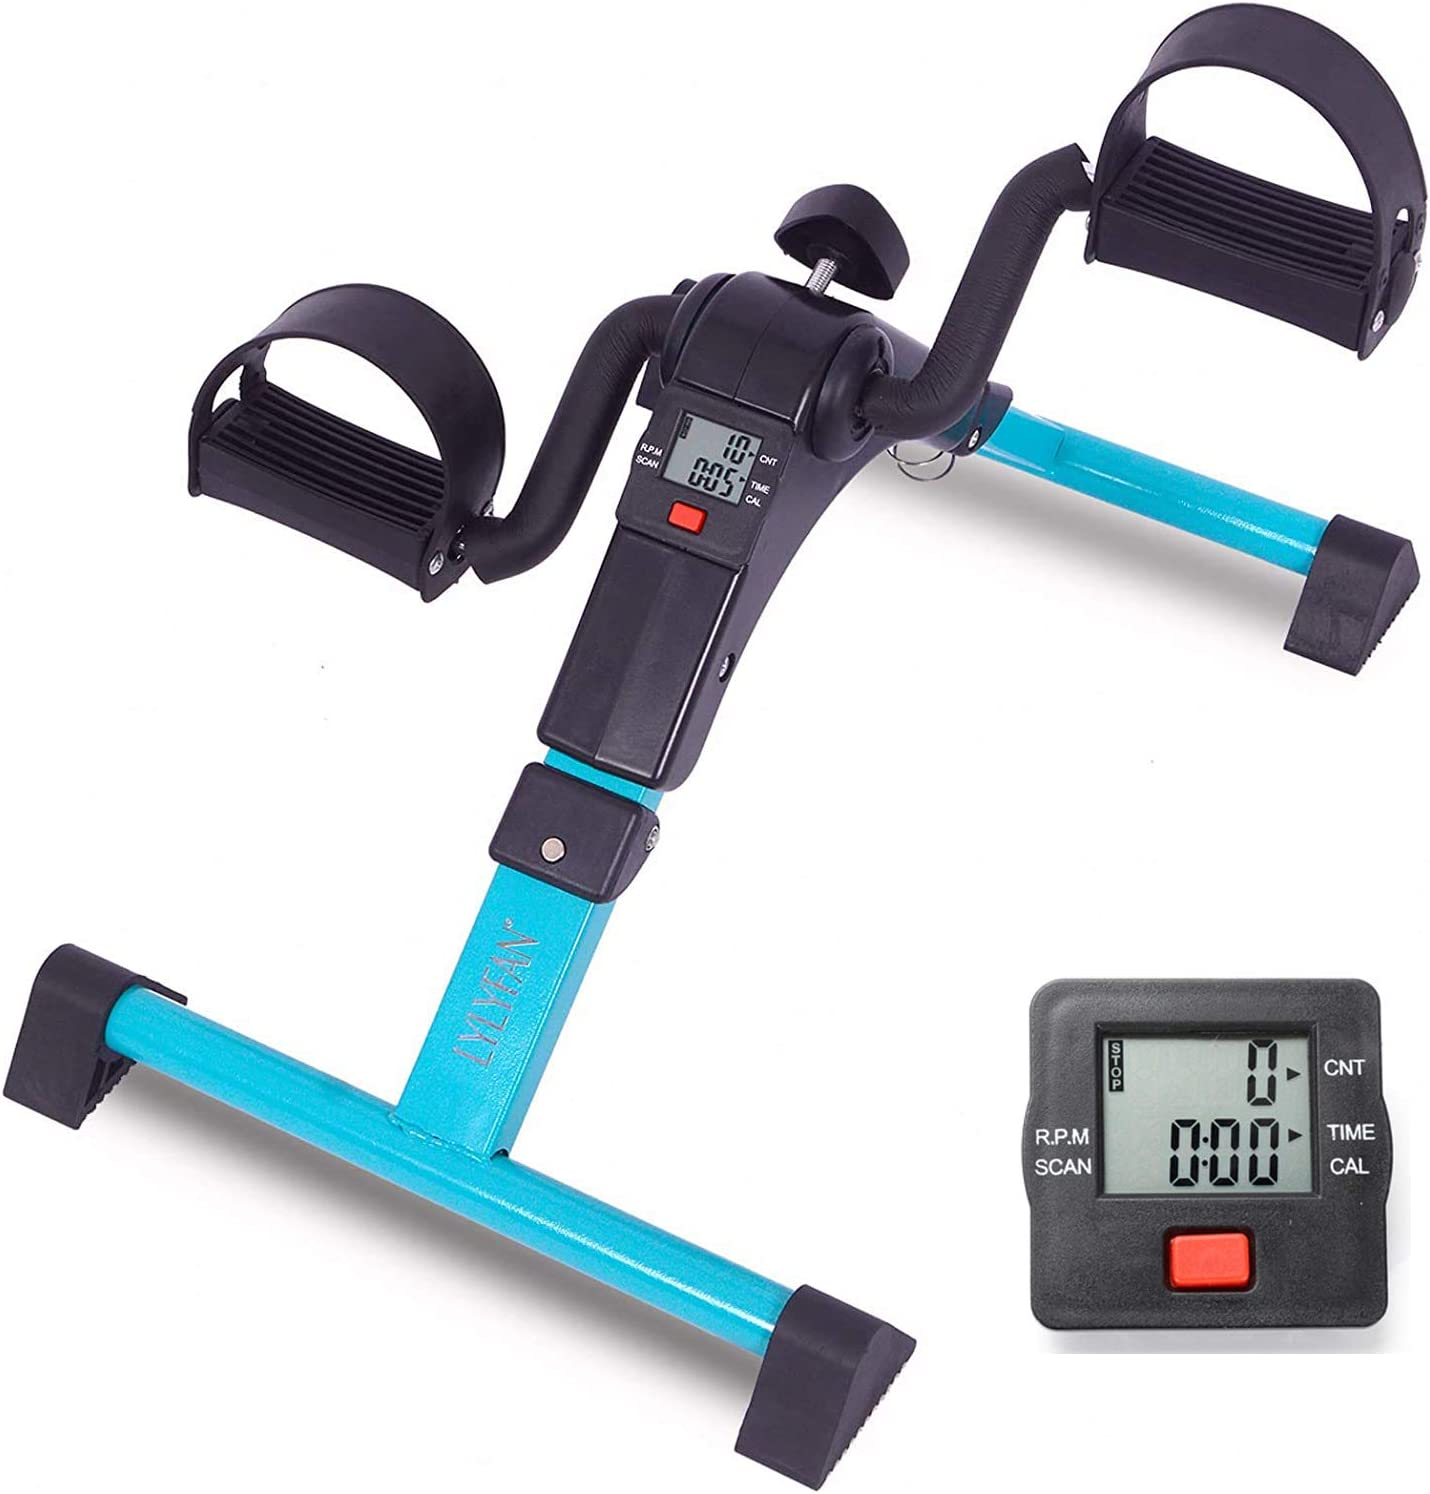 show original title Details about  /Mini Compact Electric Exercise Bike Pedal Keyboard Suitable for Arms and Legs